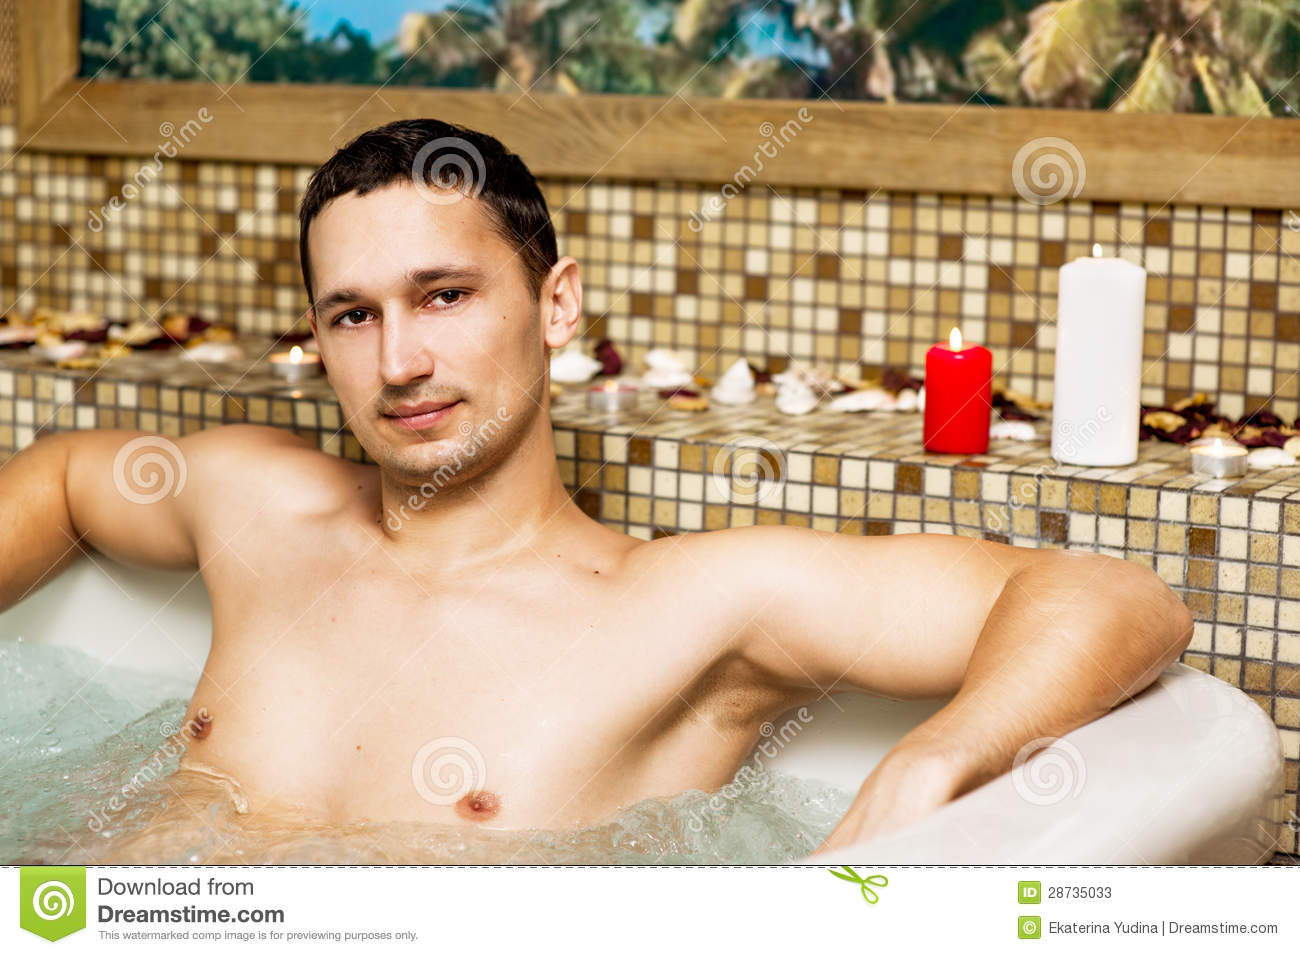 Young Man In Romantic Jacuzzi Stock Photos - Image: 28735033